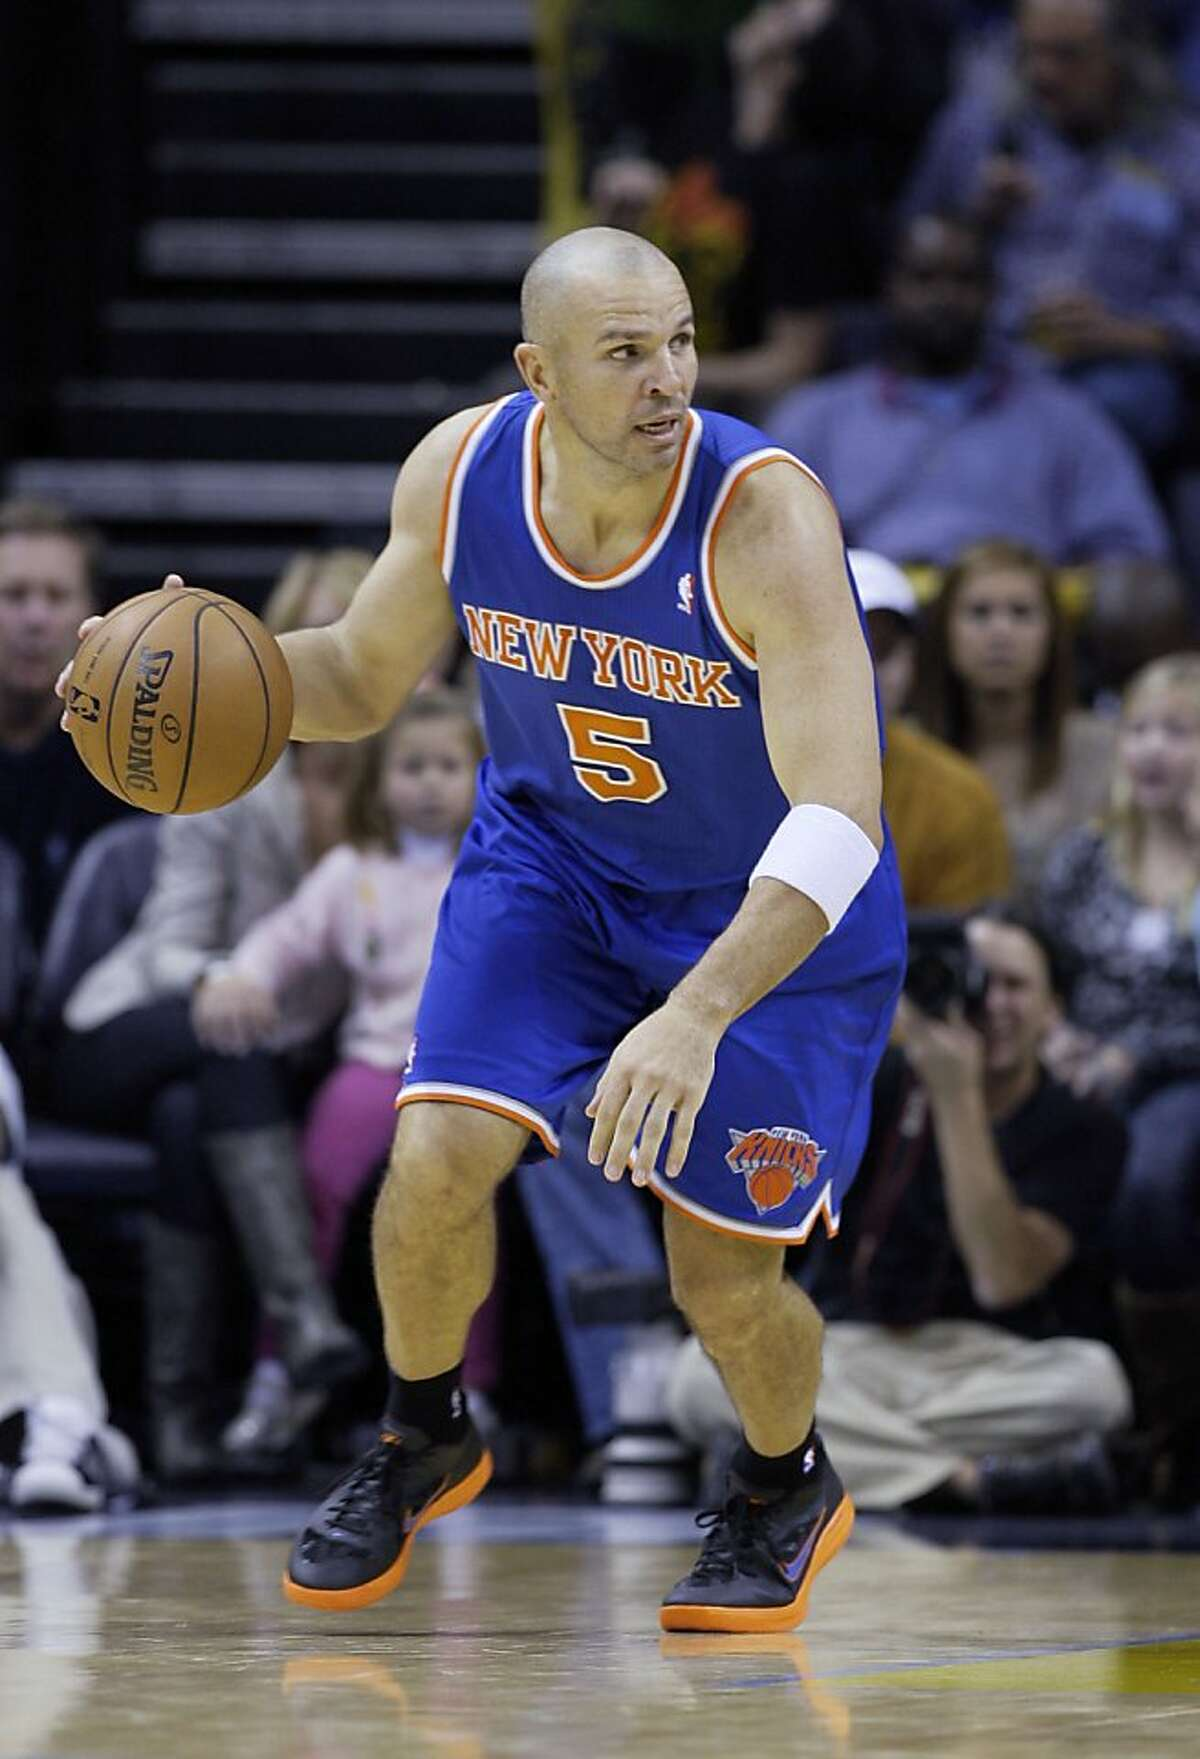 New York Knicks' Jason Kidd plays during the second half of an NBA basketball game against the Memphis Grizzlies in Memphis, Tenn., Friday, Nov. 16, 2012. The Memphis Grizzlies defeated the New York Knicks 105-95. (AP Photo/Danny Johnston)